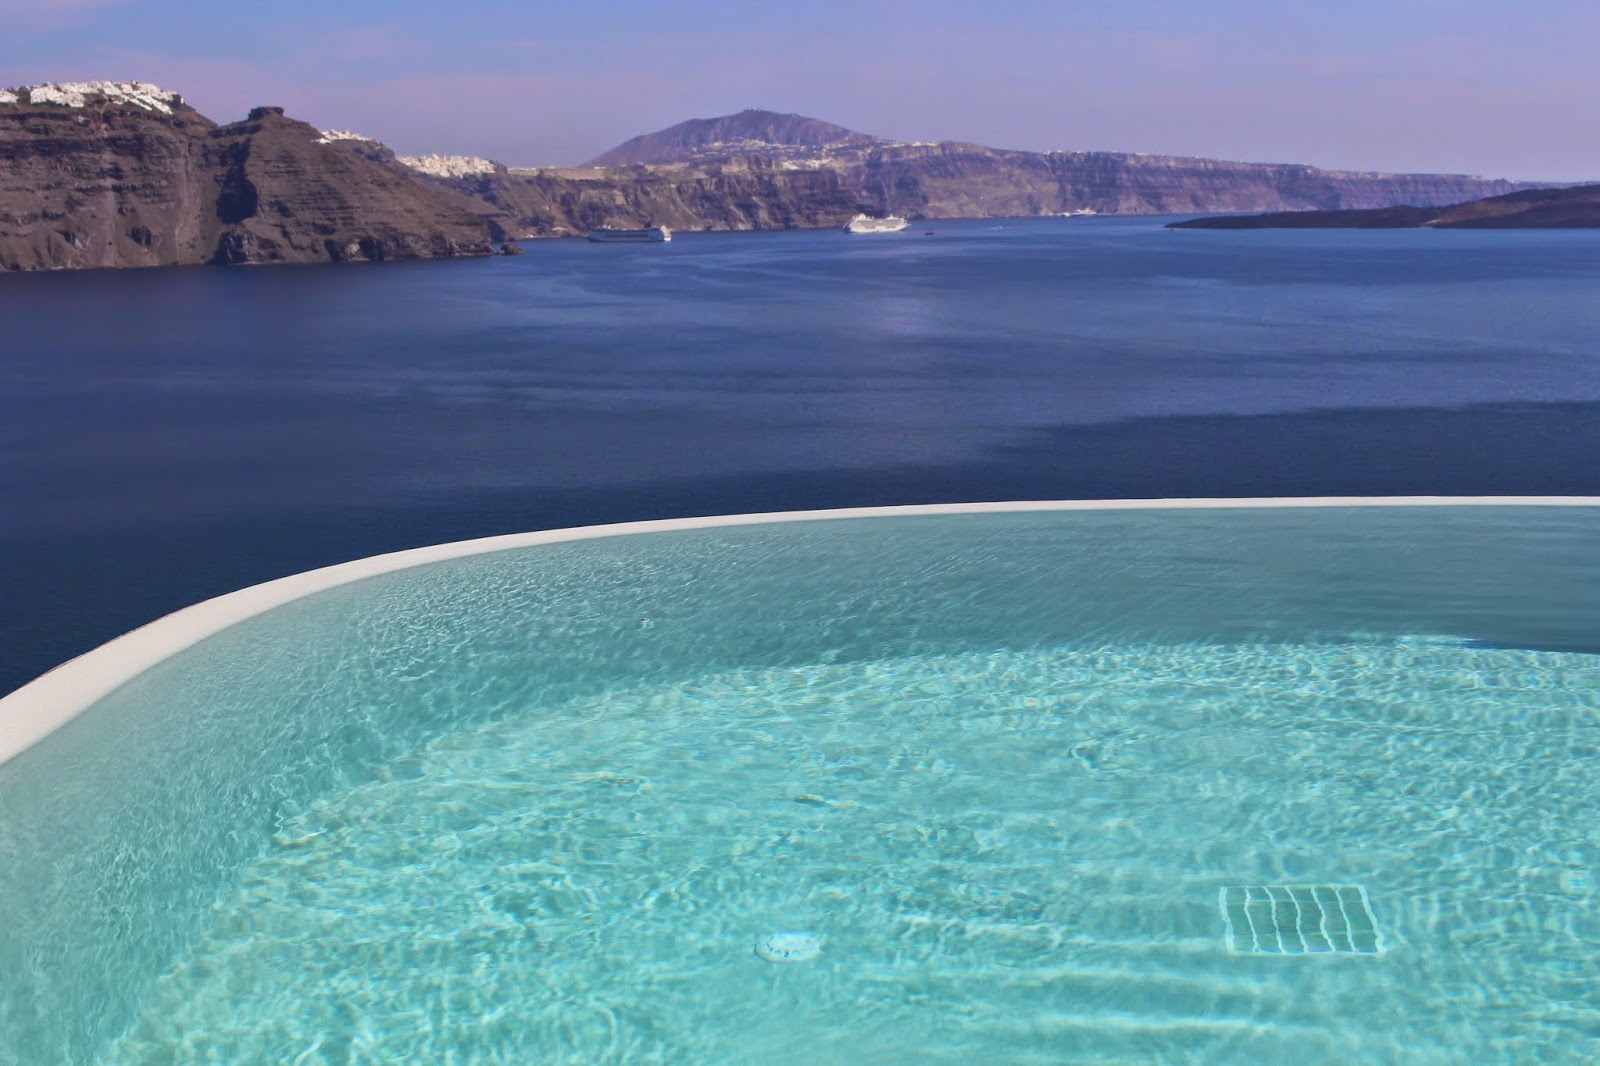 Oia and Pezoules: Where to stay on the Island of Santorini